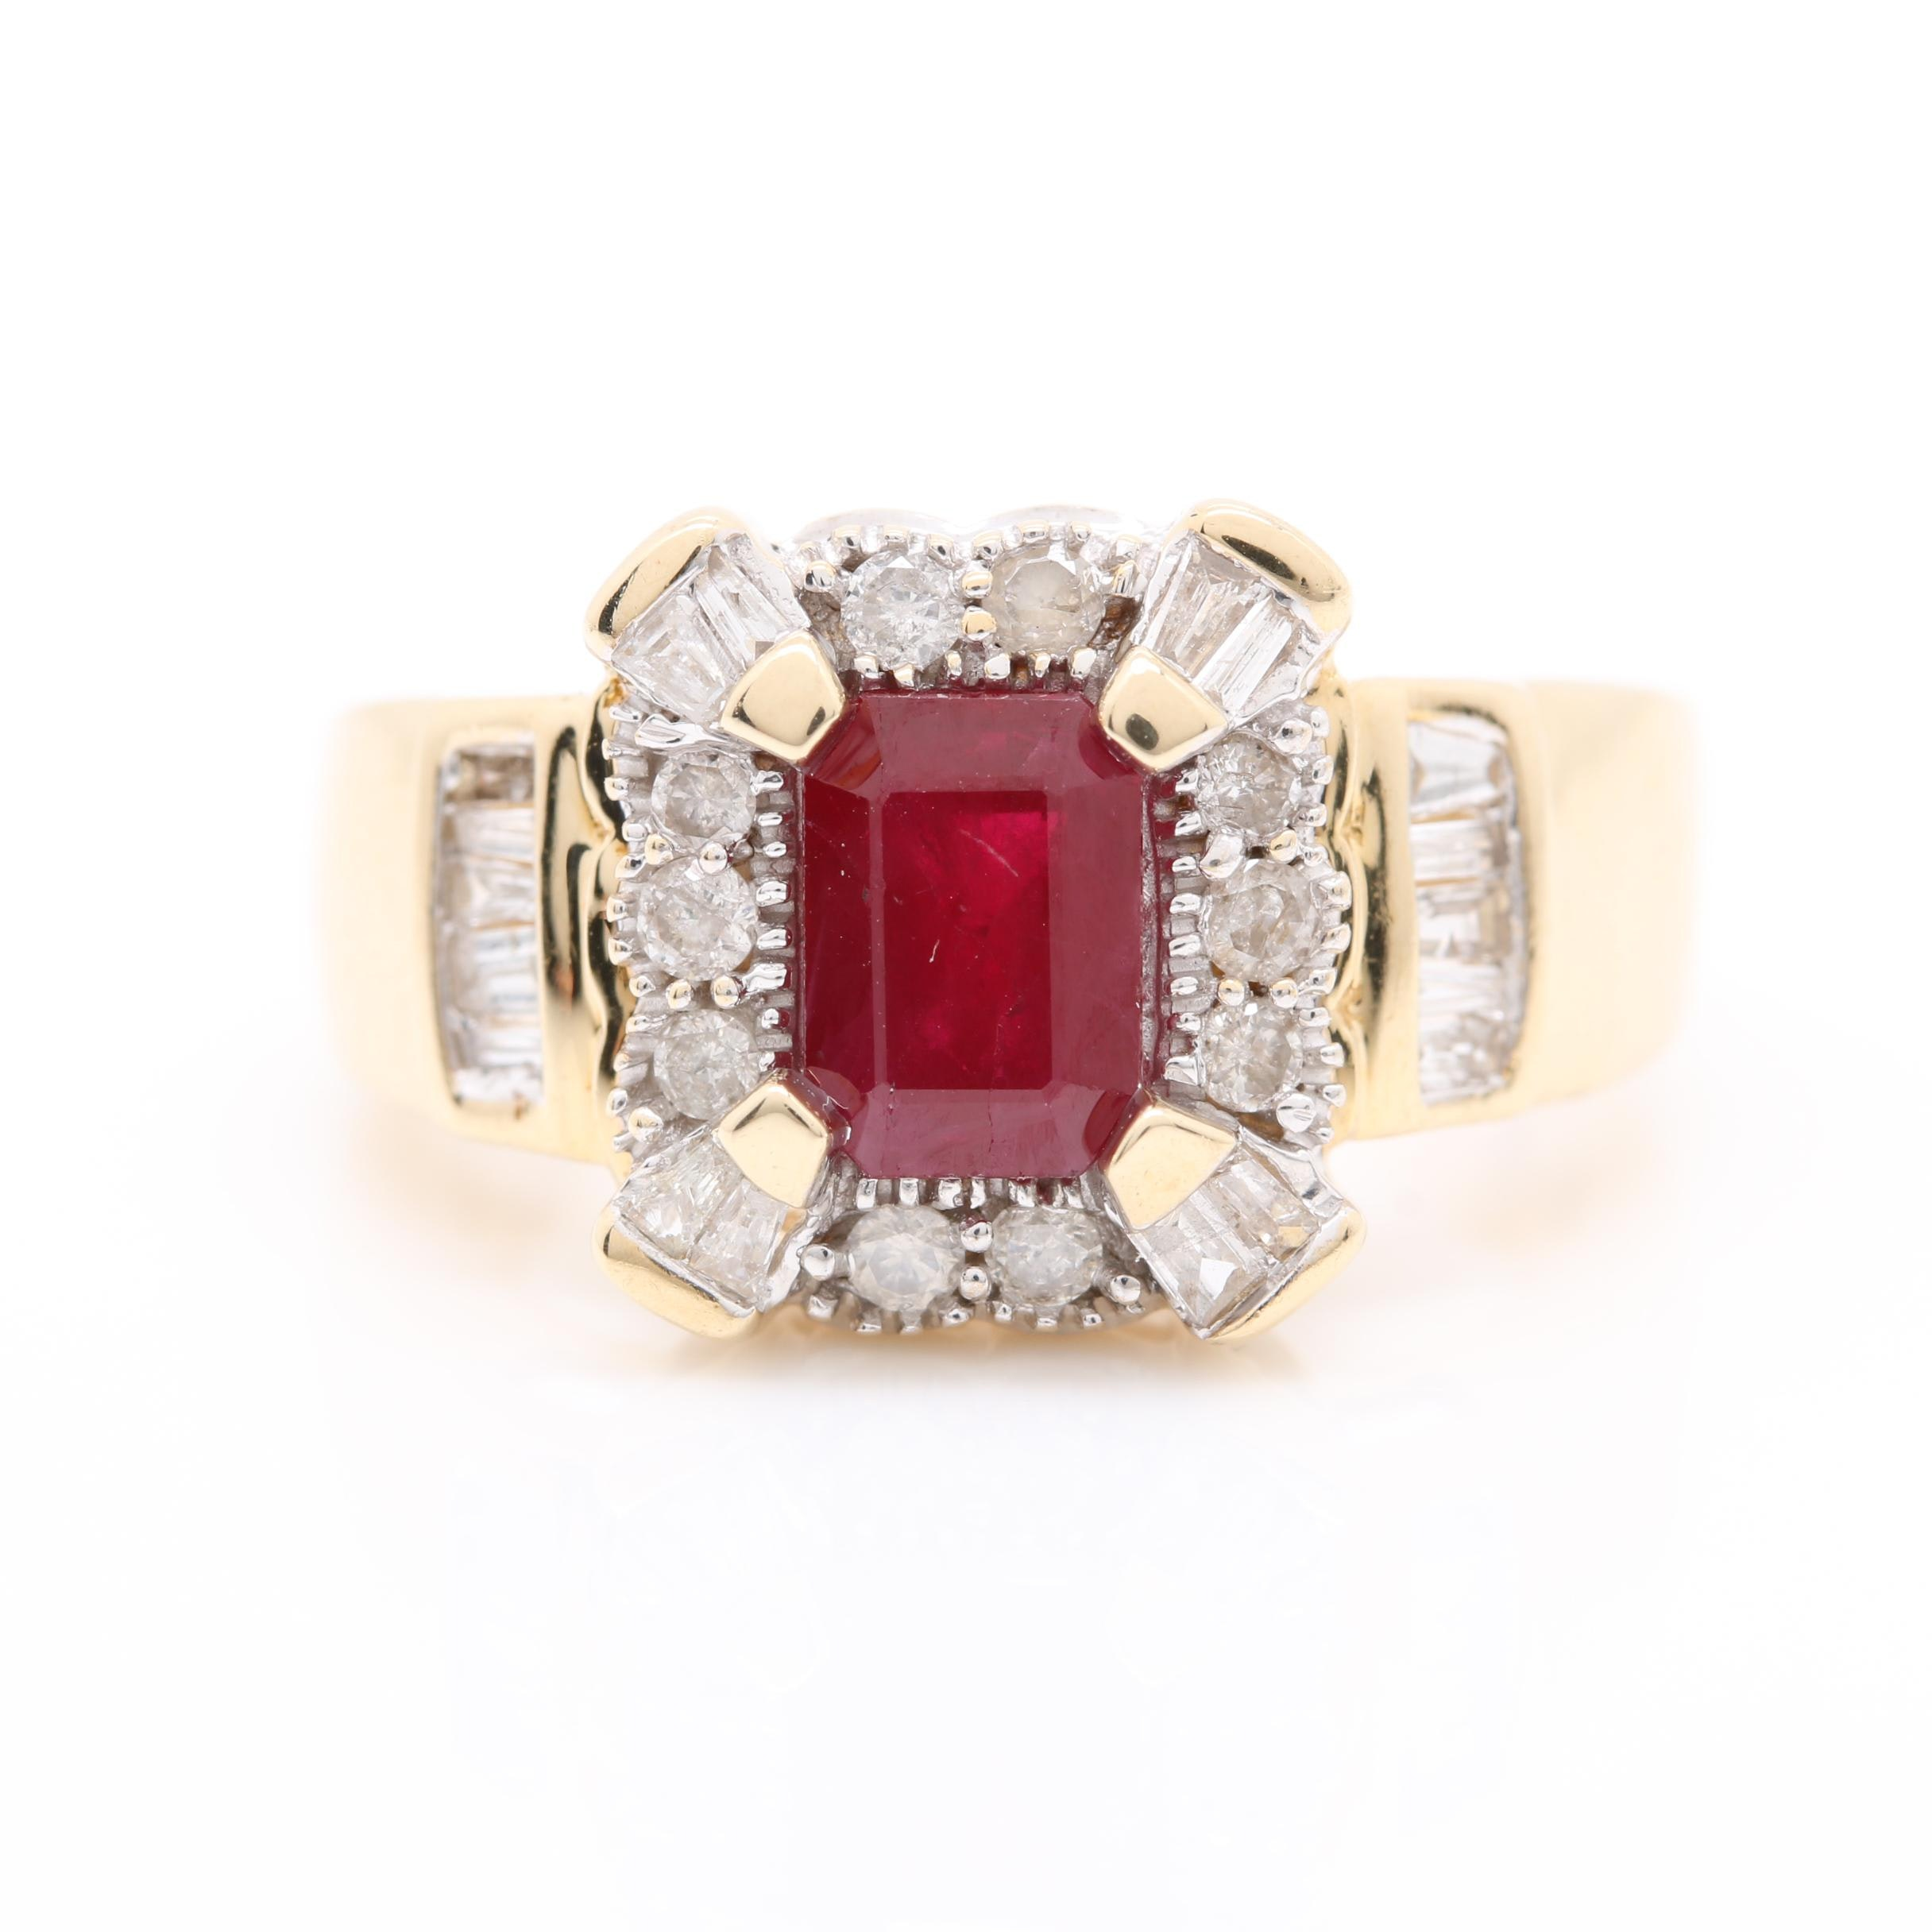 14K Yellow Gold 1.13 CT Ruby and Diamond Ring